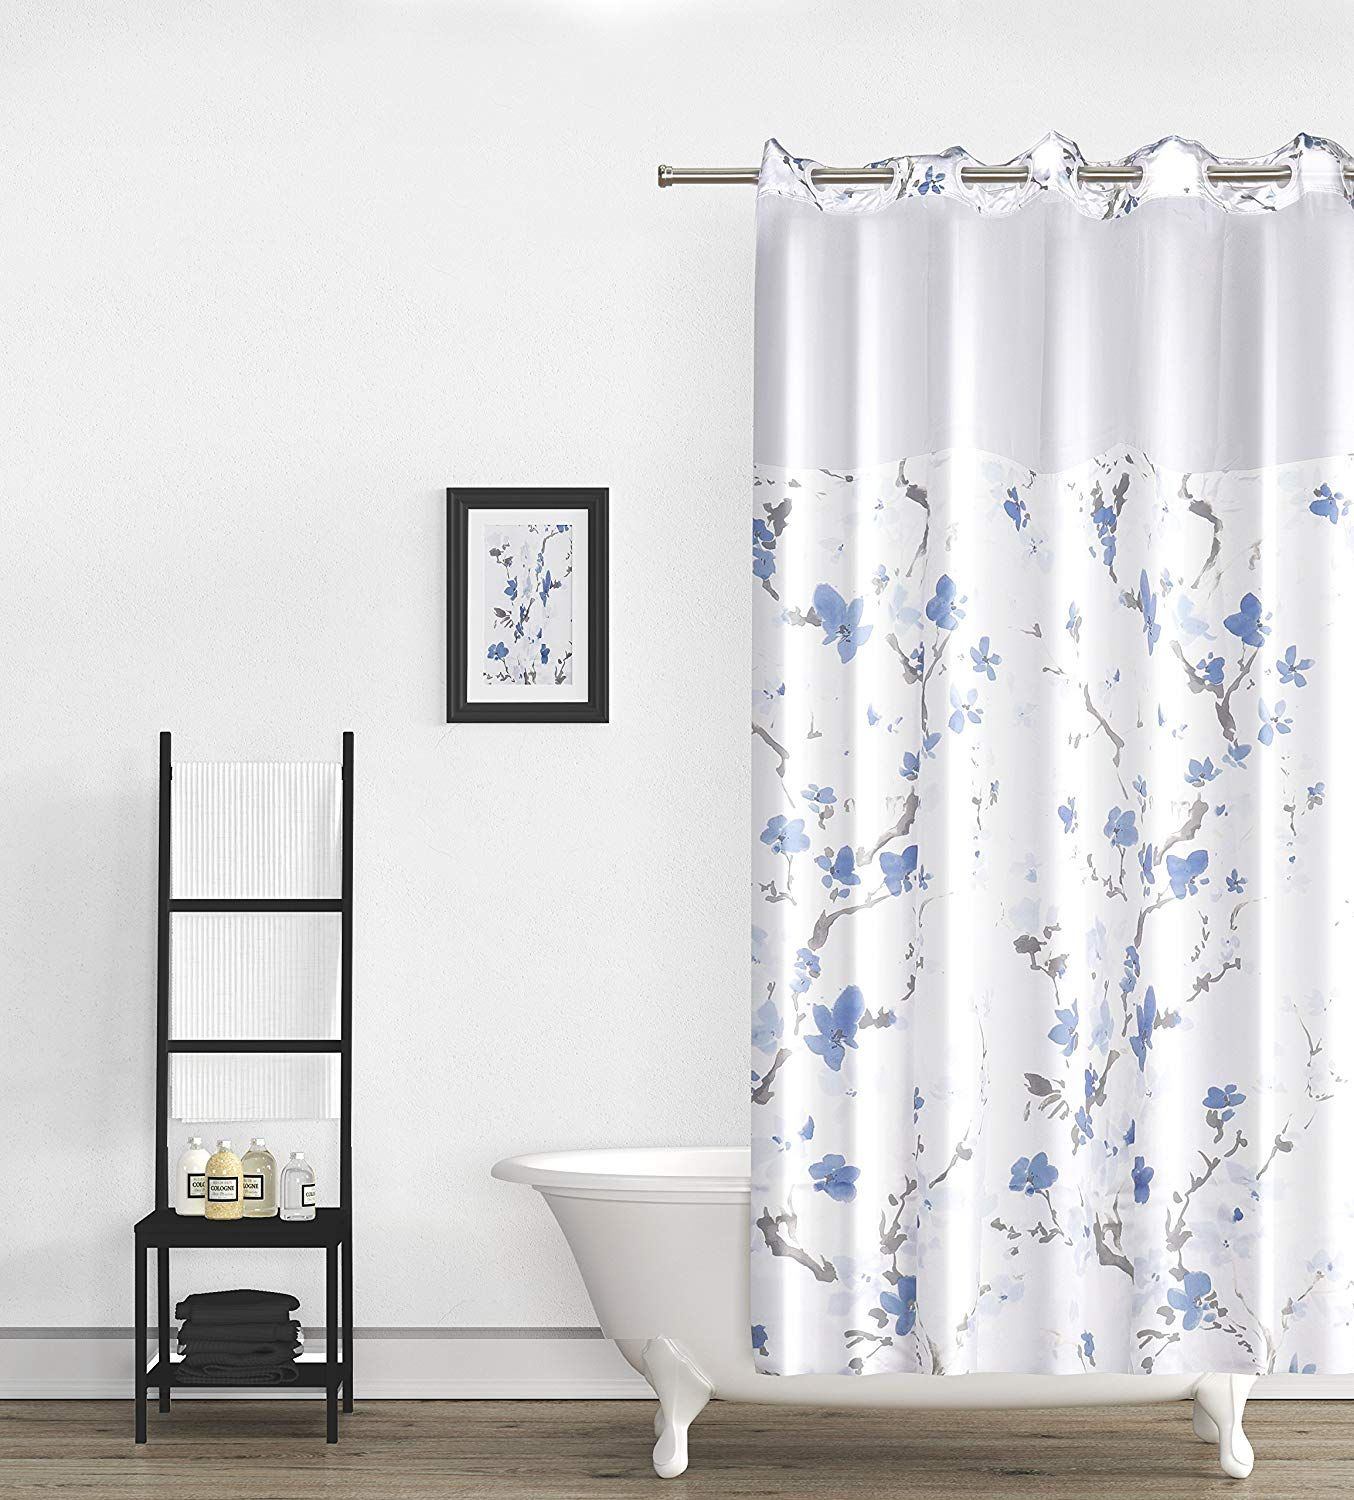 Snaphook Hookless Shower Curtain W Snap In Liner Amazon Com Ad